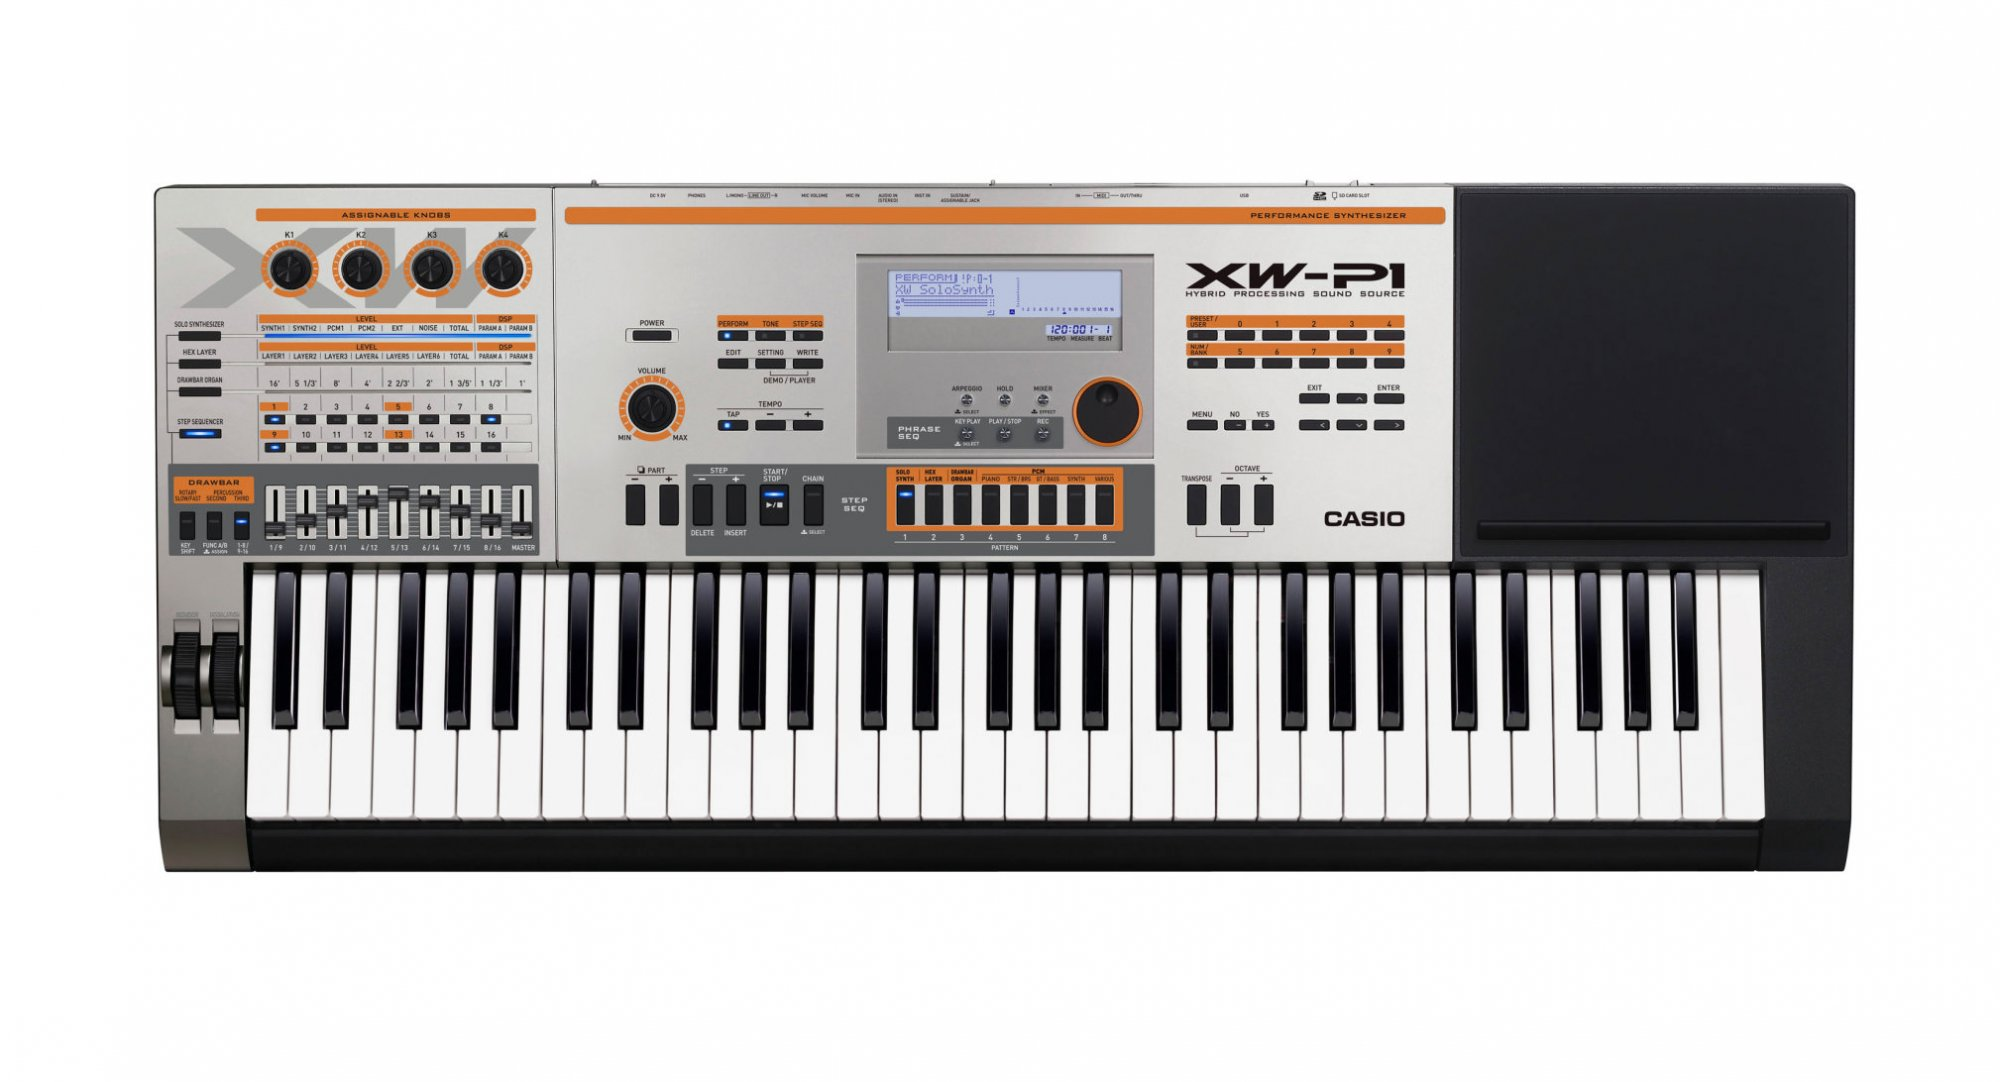 Casio XW-P1 61-Key Performance Synthesizer